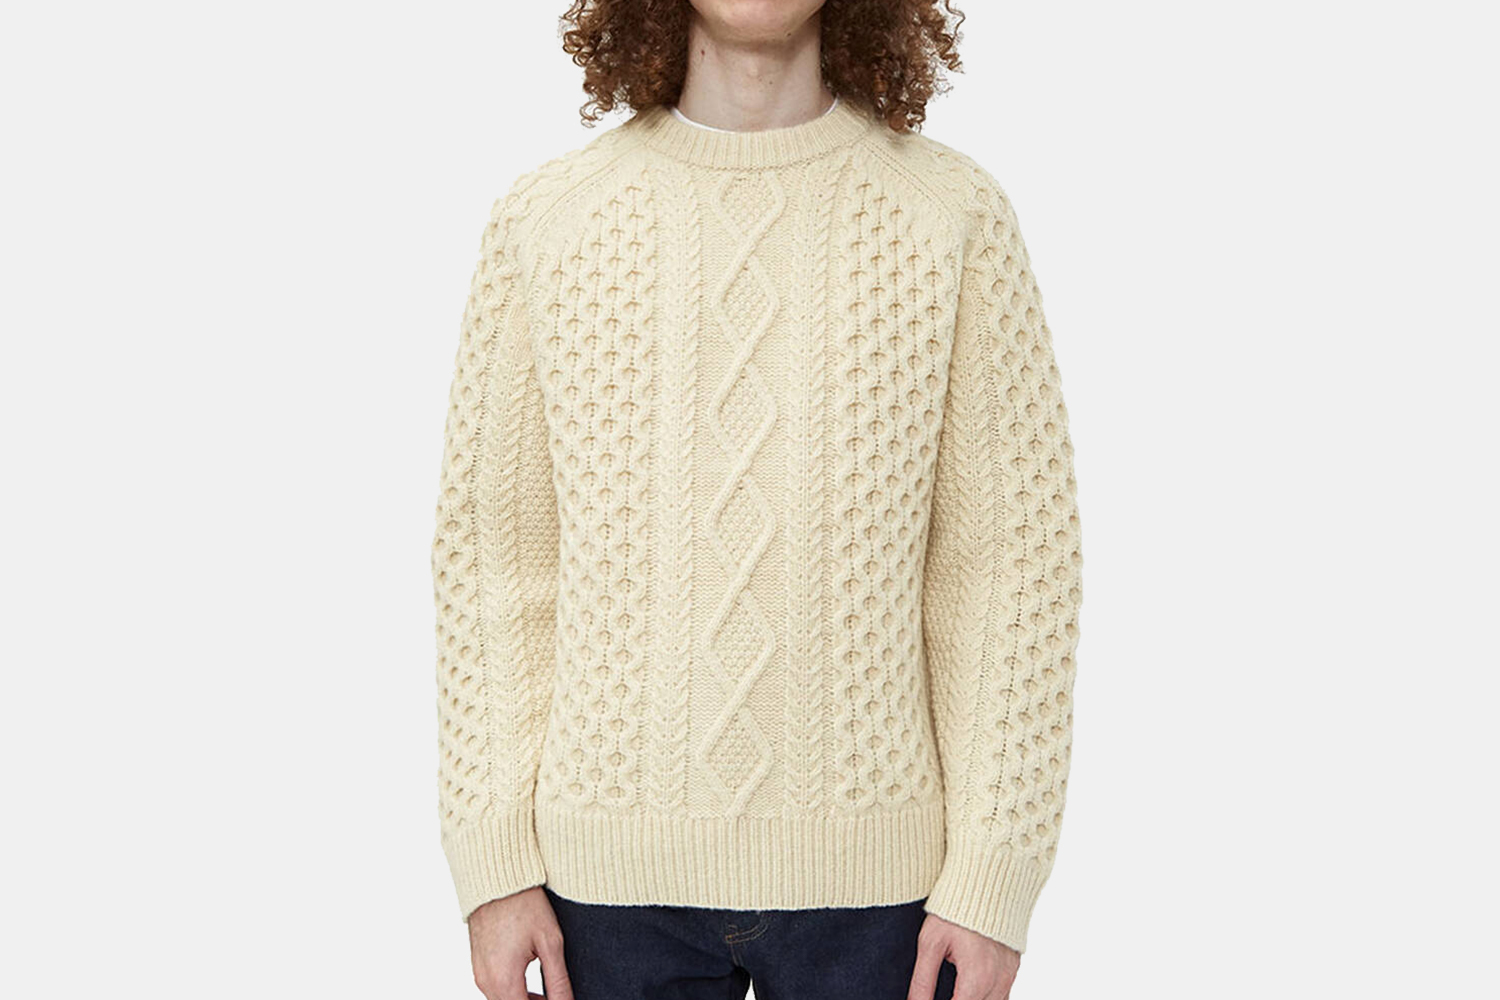 Levi's Vintage Clothing Aran Knit Sweater